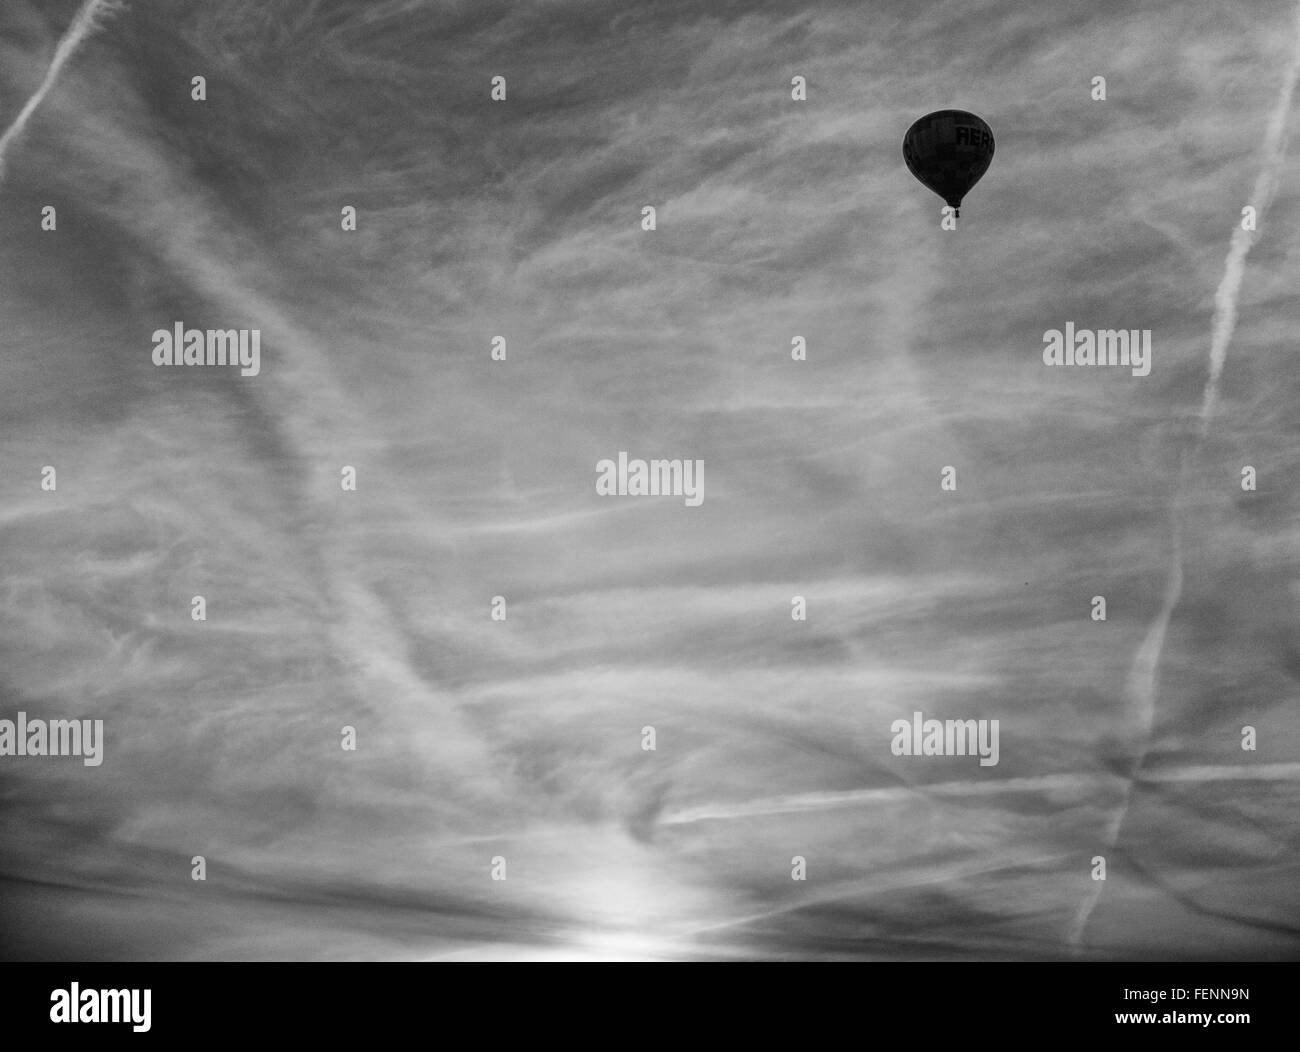 Low Angle View Of Hot Air Balloon - Stock Image